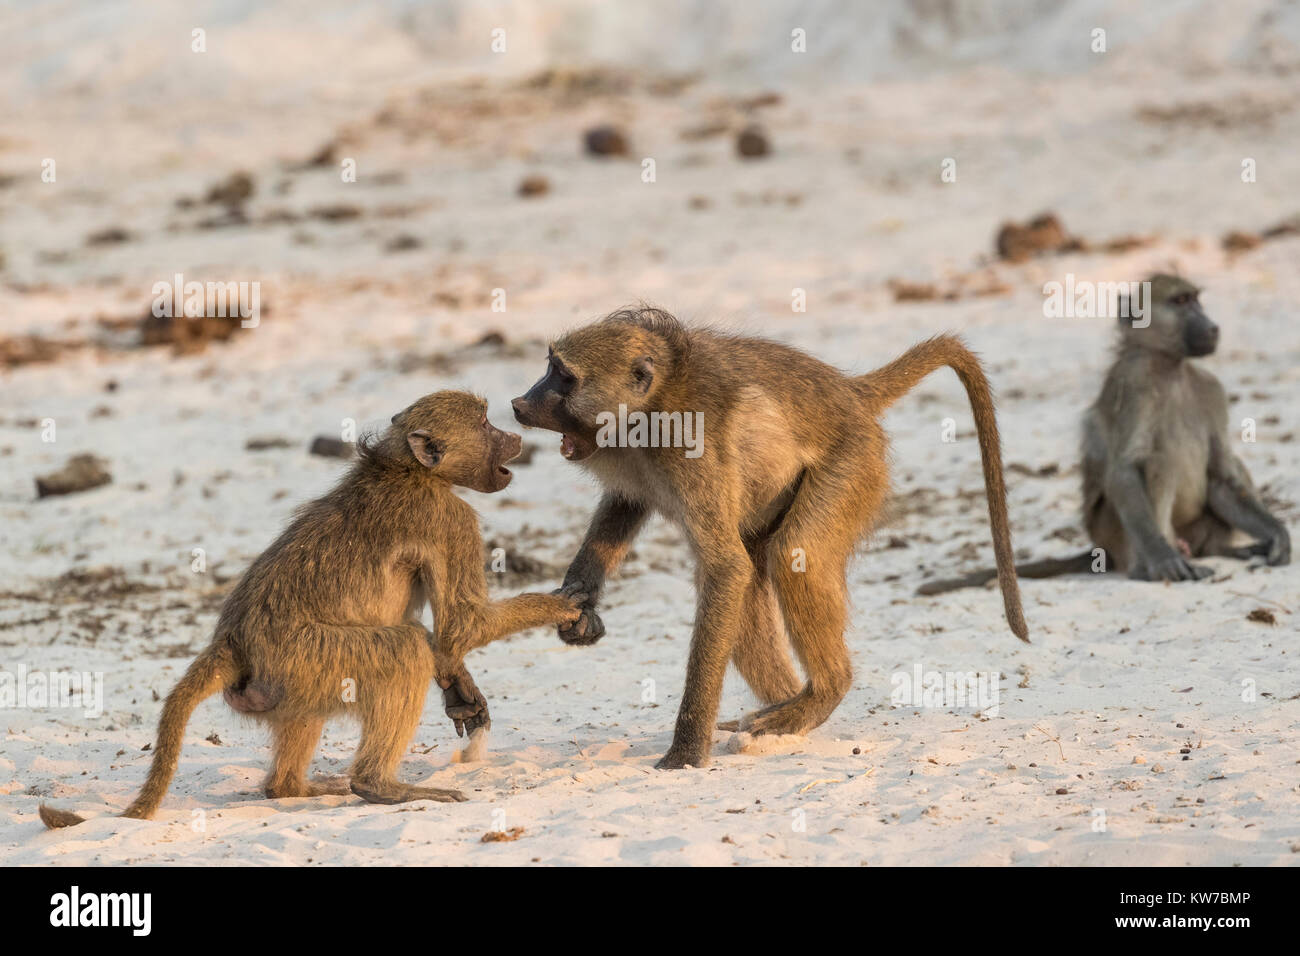 Chacma baboons (Papio ursinus) in social play, Chobe national park, Botswana, Africa, September 2017 - Stock Image